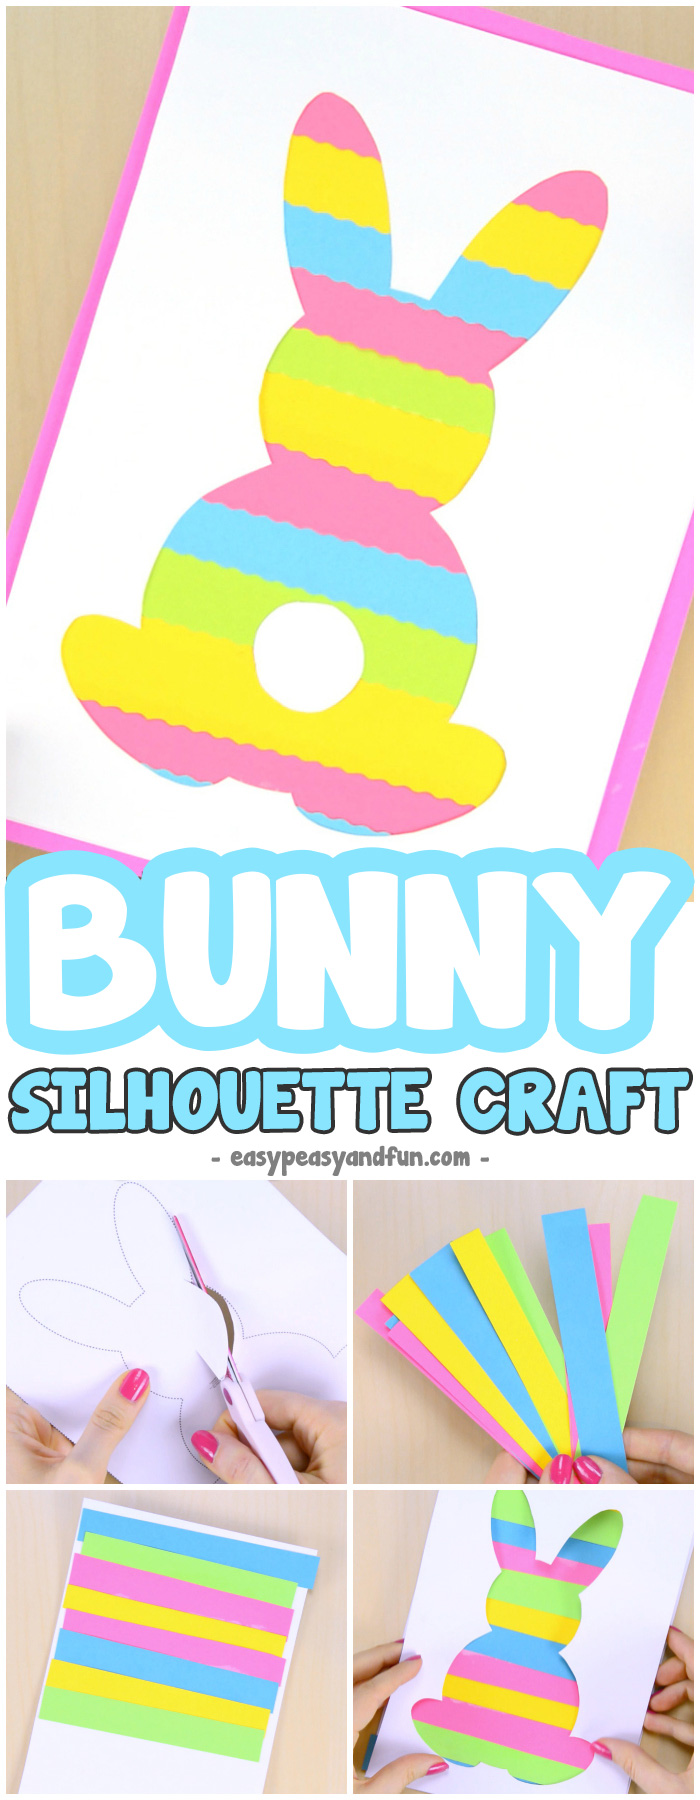 graphic relating to Easter Bunny Printable Template identified as Printable Easter Silhouette Craft - Easter Bunny Template